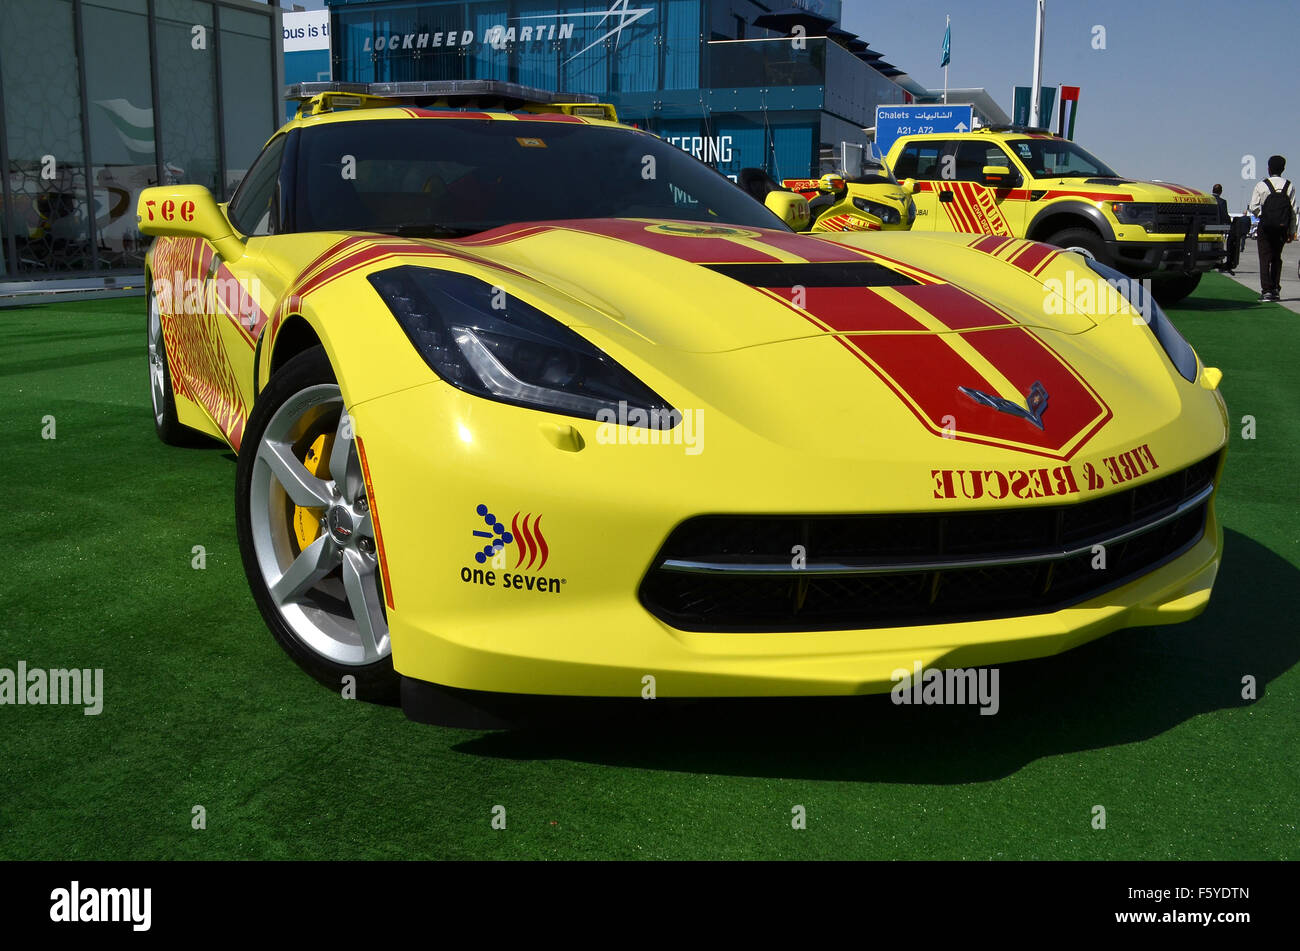 Dubai, UAE. 10th November, 2015. Hot Rod: Dubai Civil Defence are using a brght yellow V8-powered Chevrolet Corvette - Stock Image